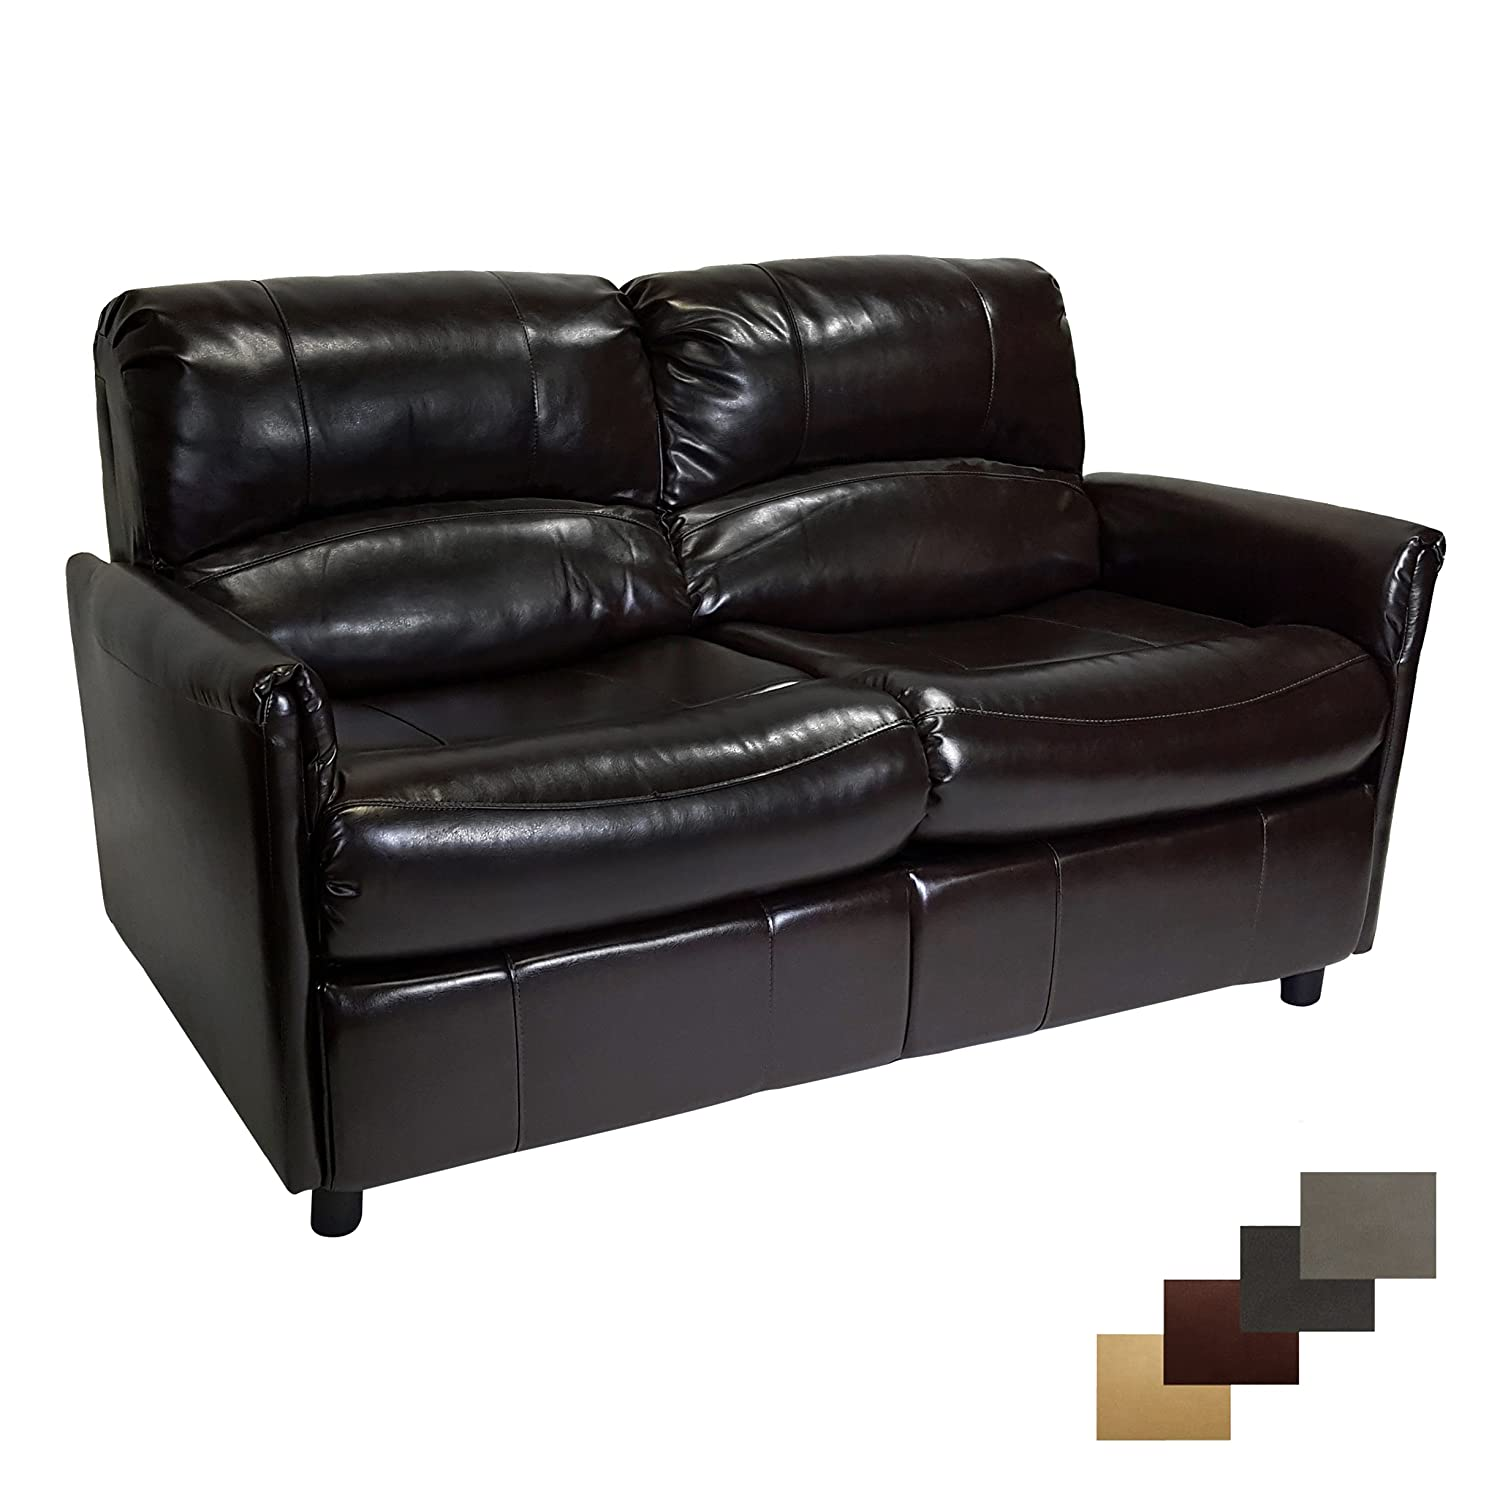 fold index pull sofa loveseat out bed rolex